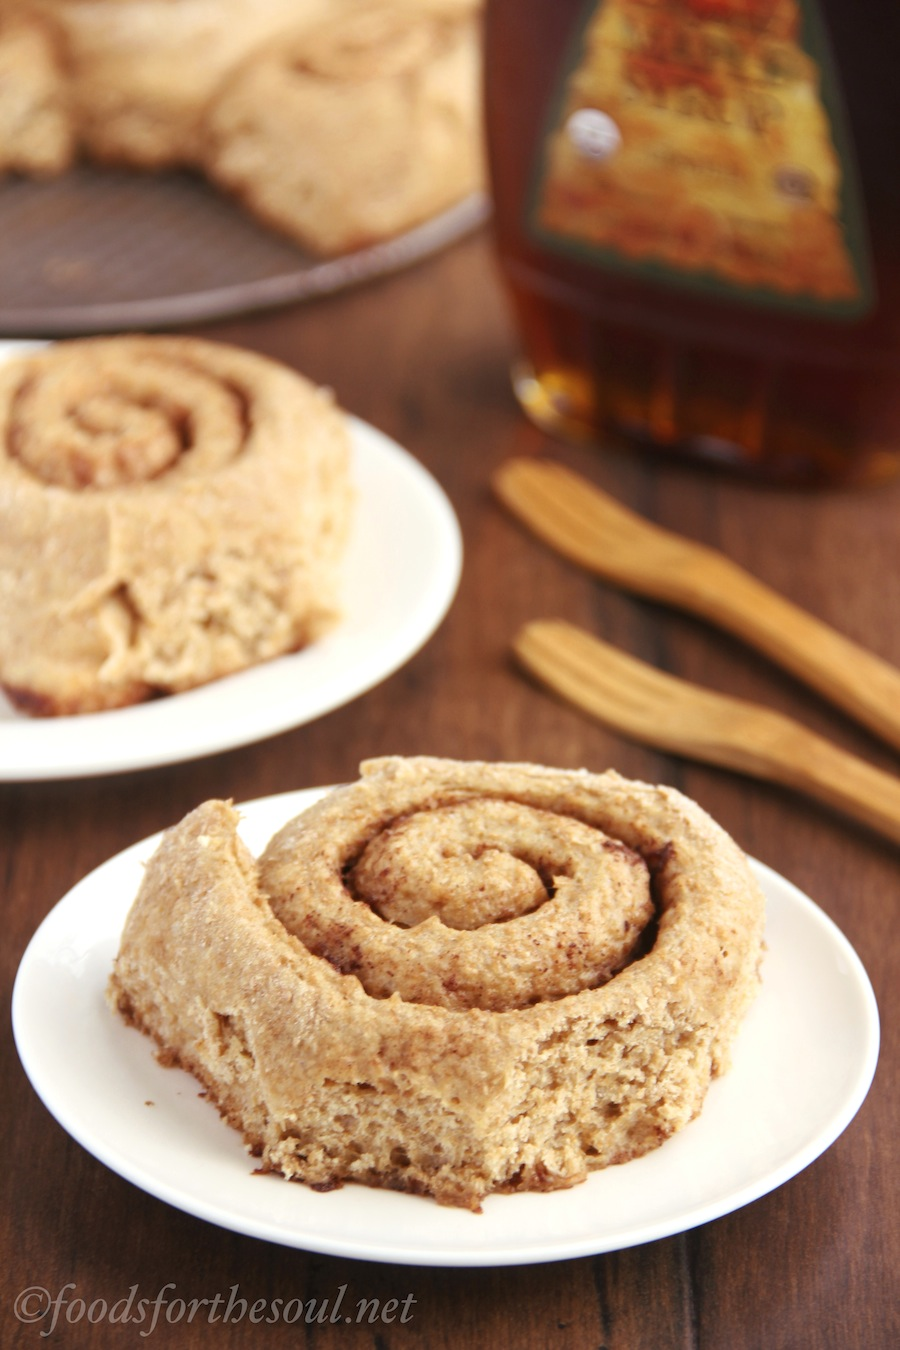 Fluffy whole wheat cinnamon rolls made with NO refined sugar! An irresistible healthy, clean eating breakfast treat.